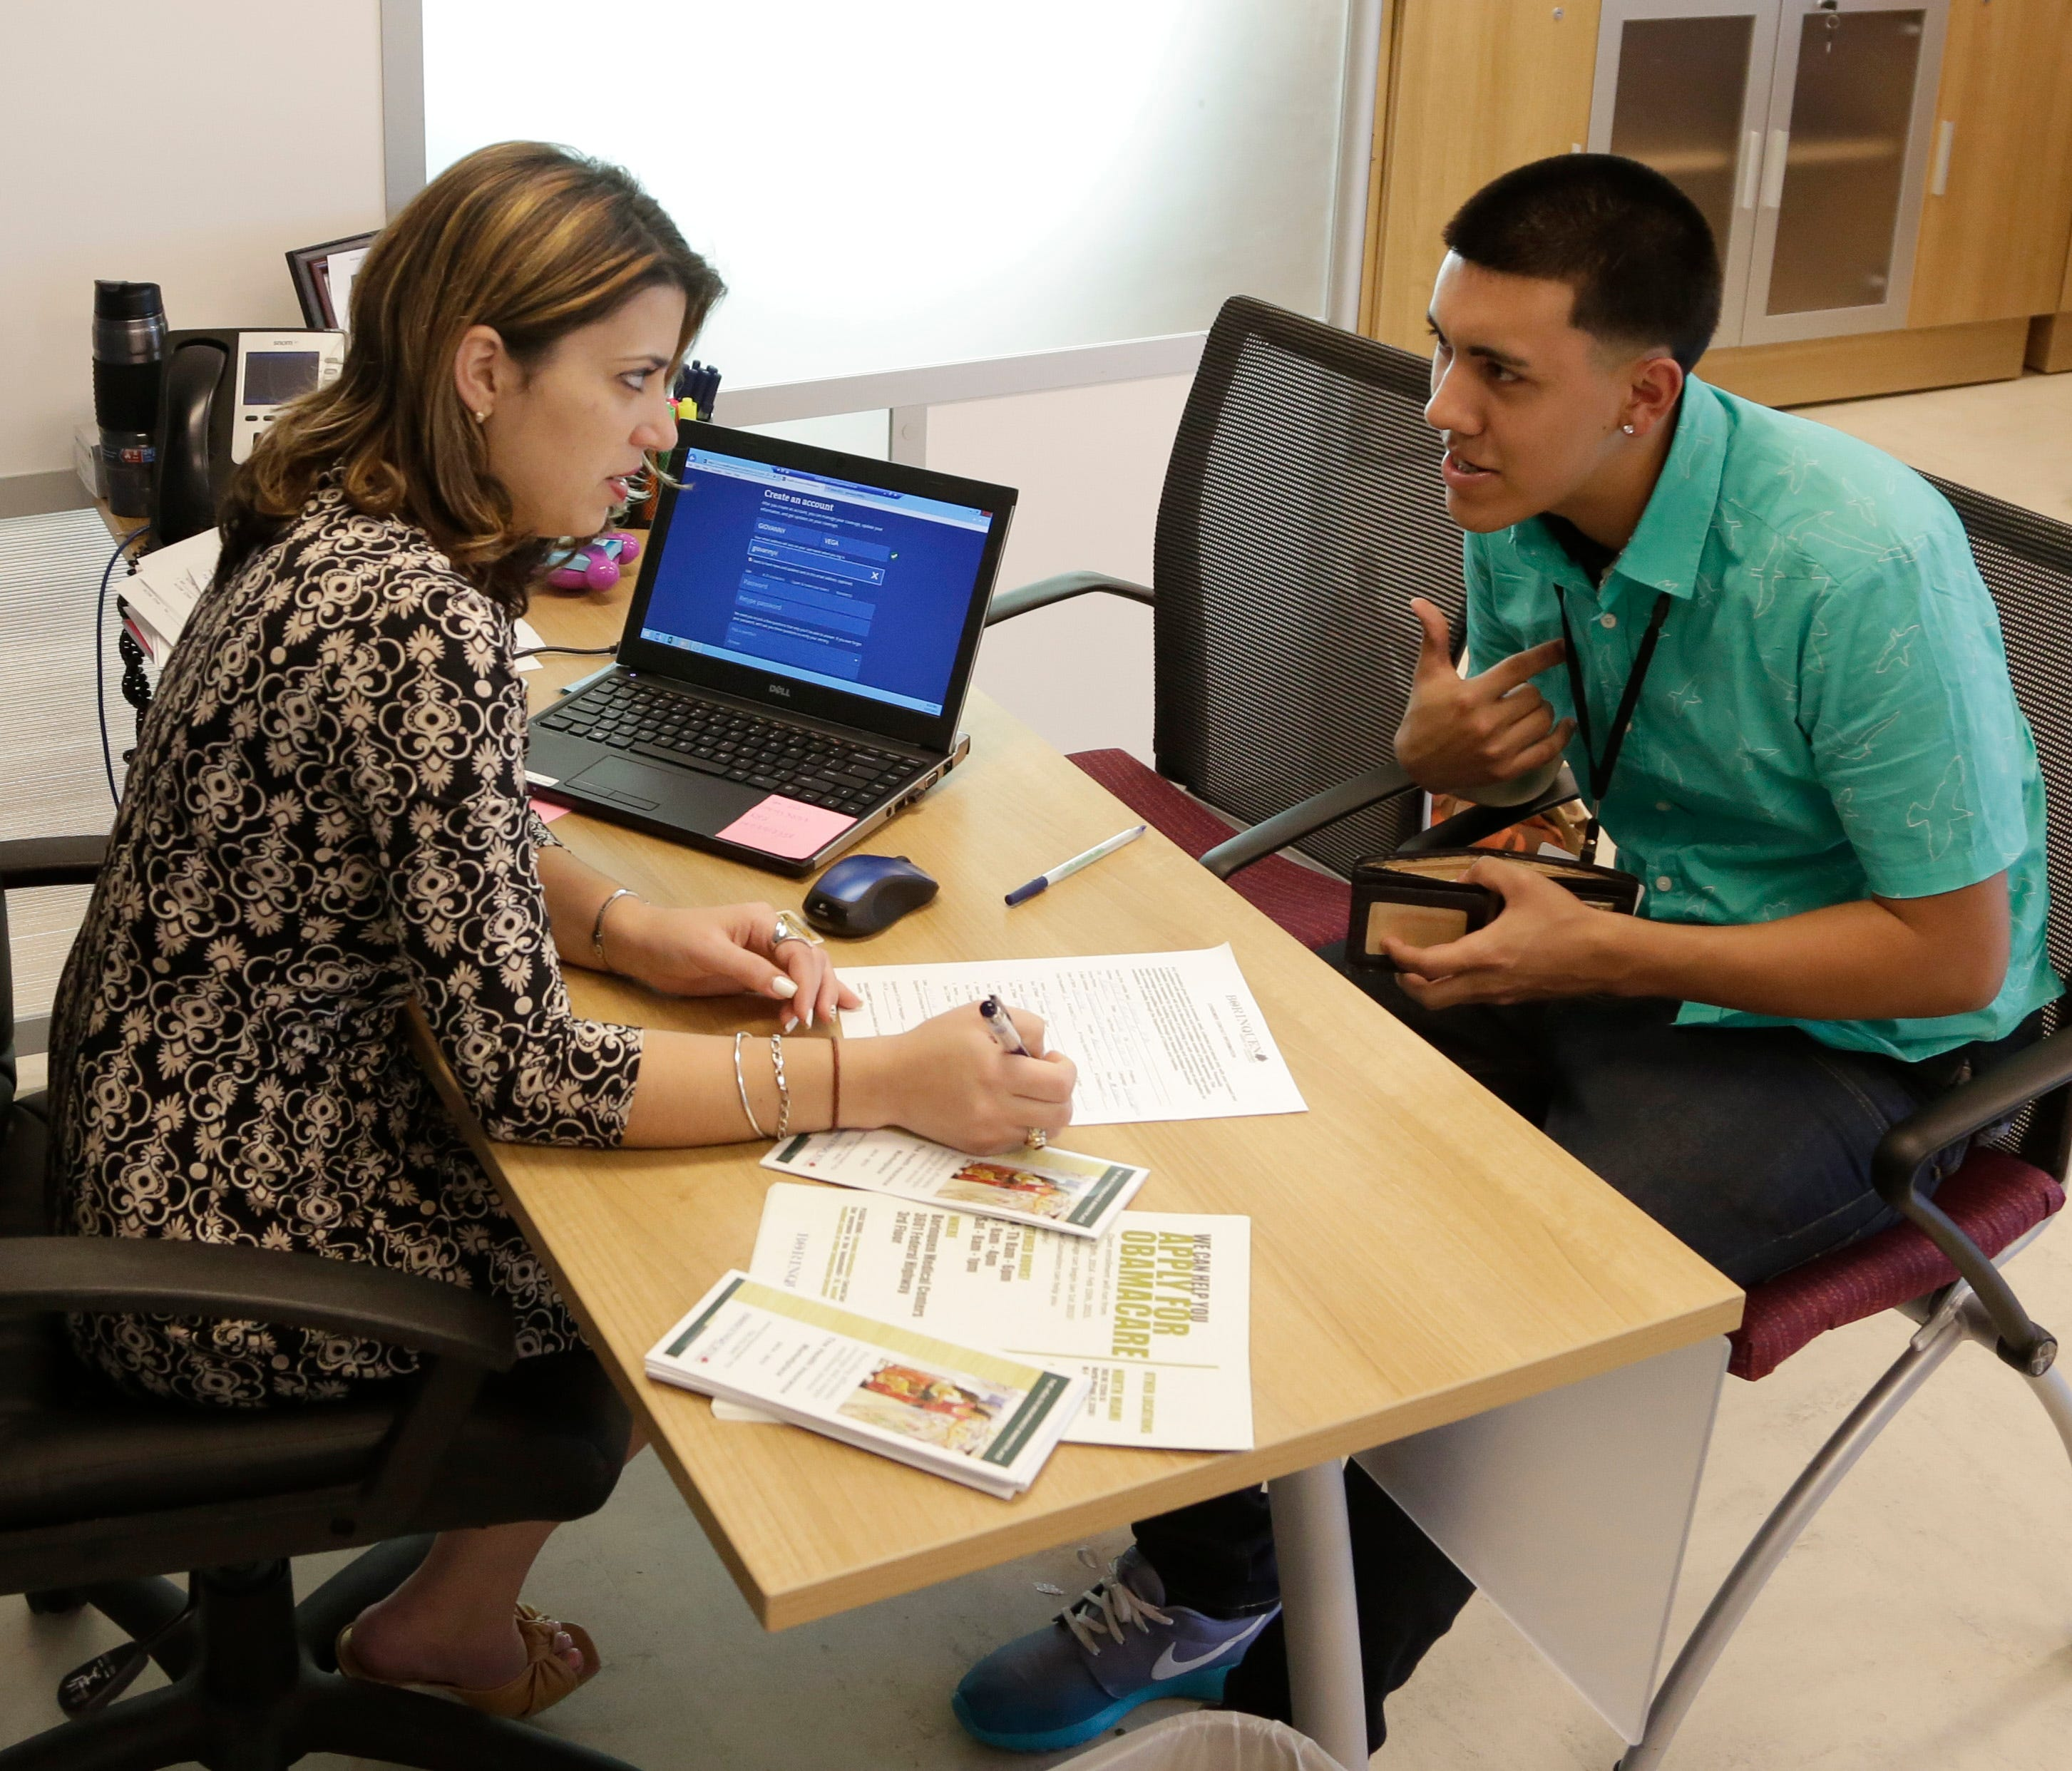 This file photo shows Navigator Dianelys Dominguez, left, assisting Giovanny Vega, 18, of Miami, right, sign up for health insurance under the Affordable Care Act, Monday, Nov. 17, 2014, at the Borinquen Medical Center in Miami.